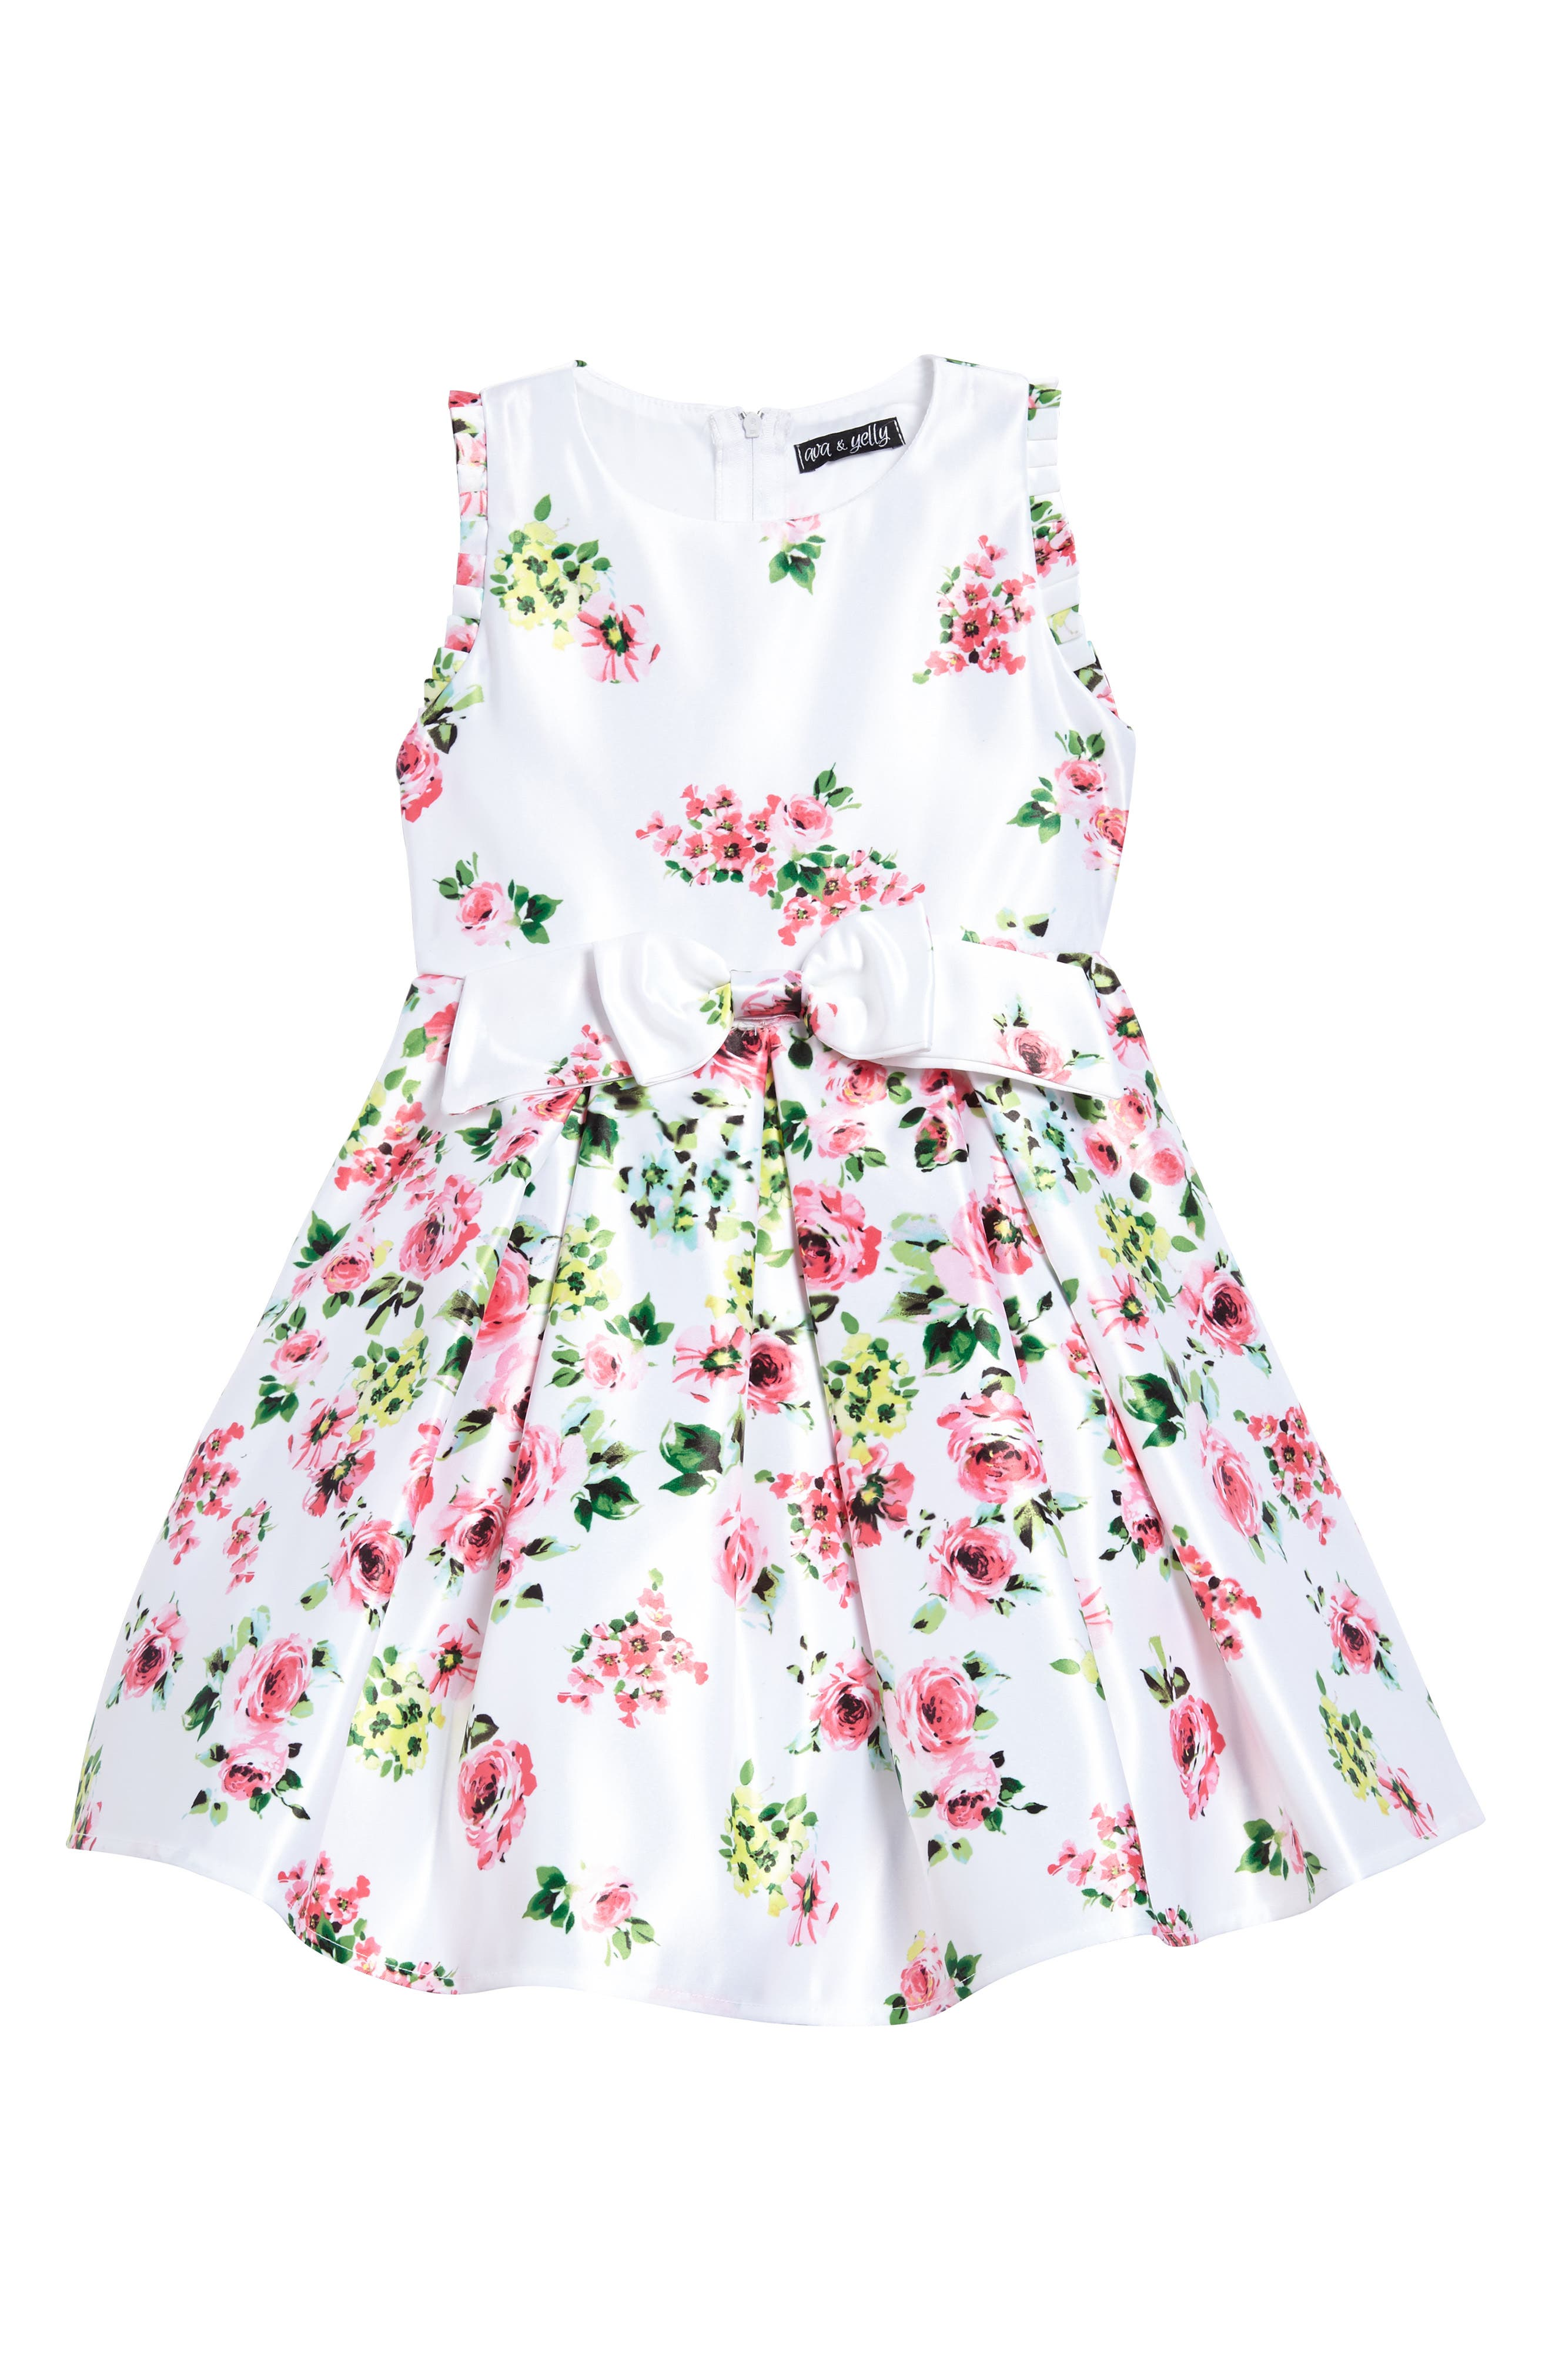 Alternate Image 1 Selected - Ava & Yelly Floral Bow Front Dress (Toddler Girls & Little Girls)